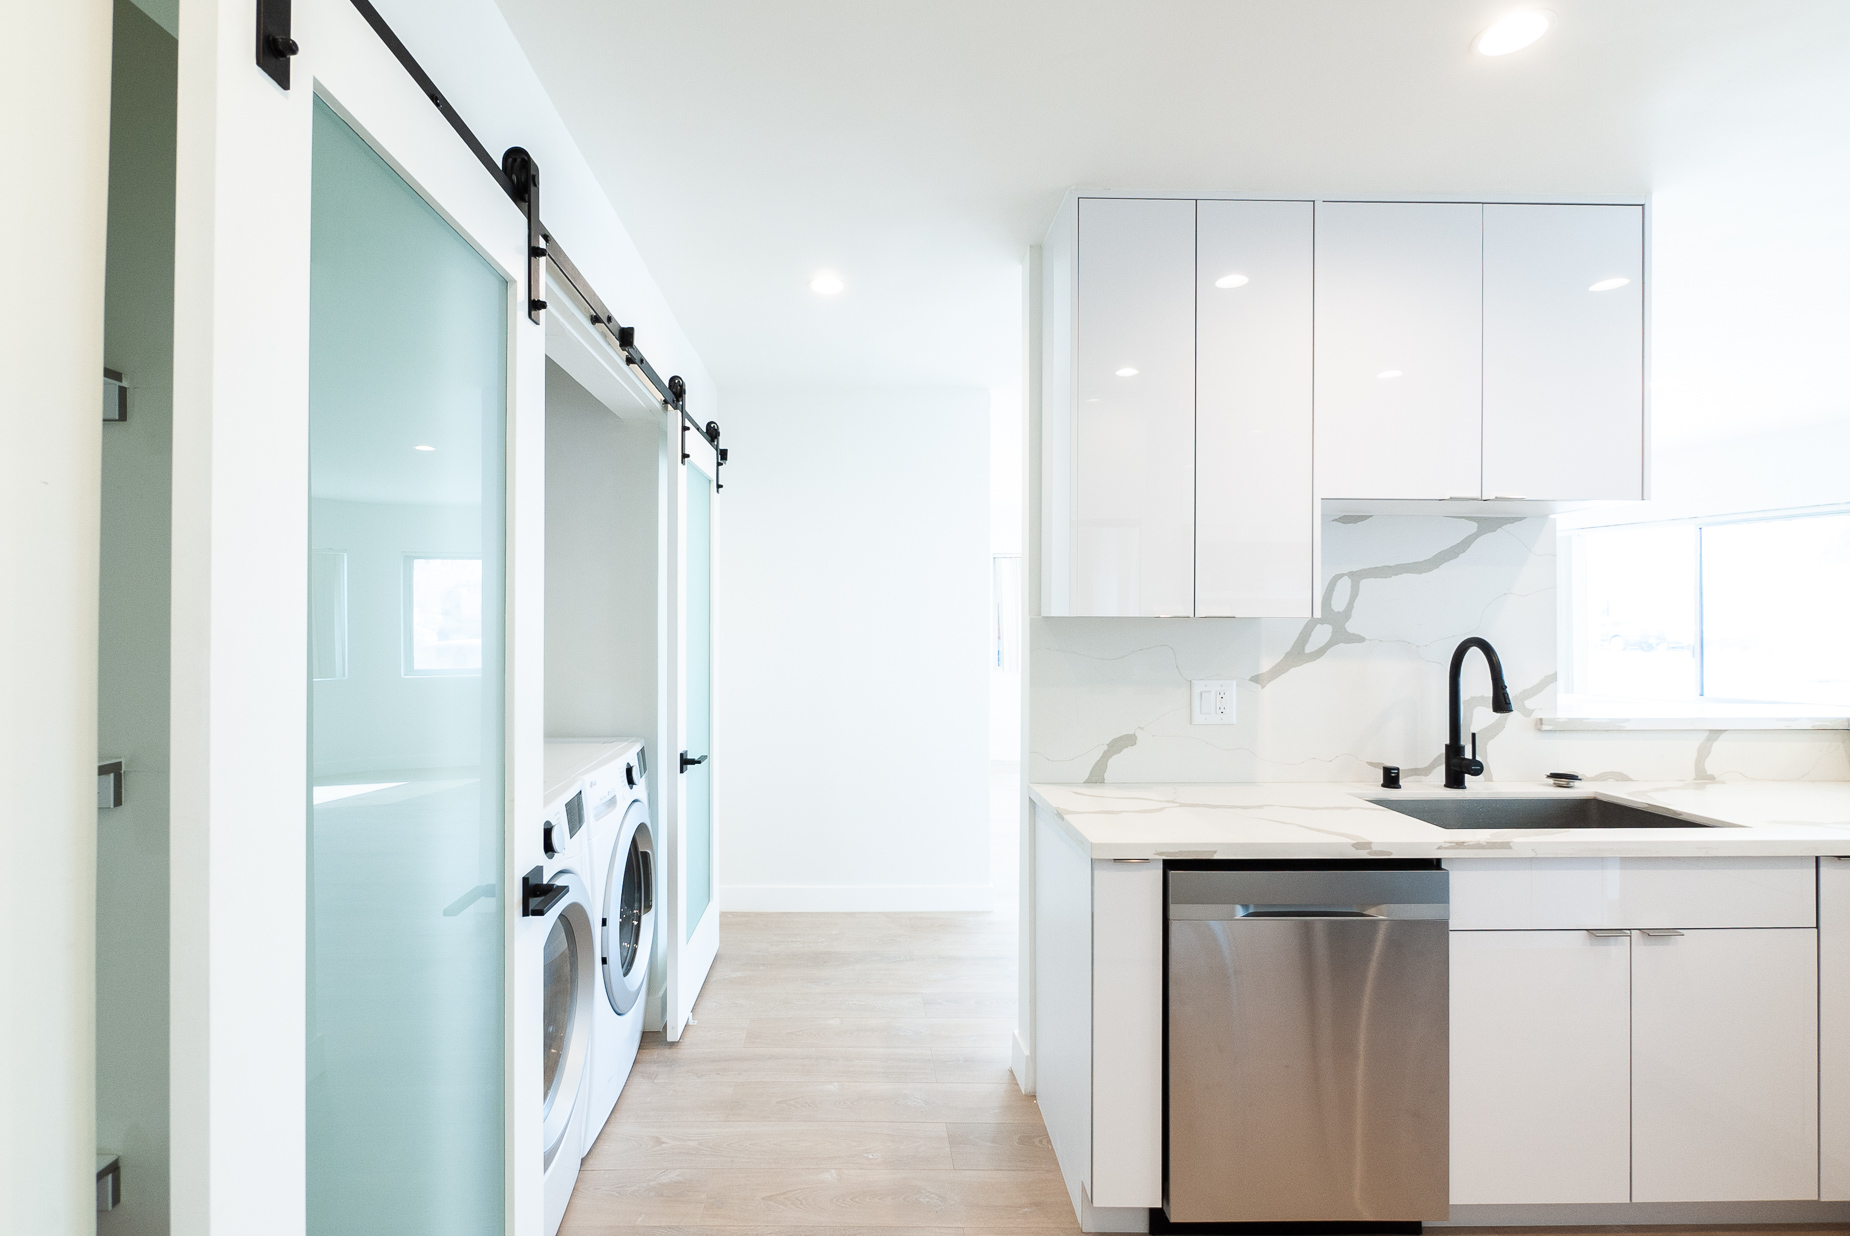 Sleek , Modern & New! Huge 1 Bed - New Washer/Dryer - Perfect Miracle Mile Location!